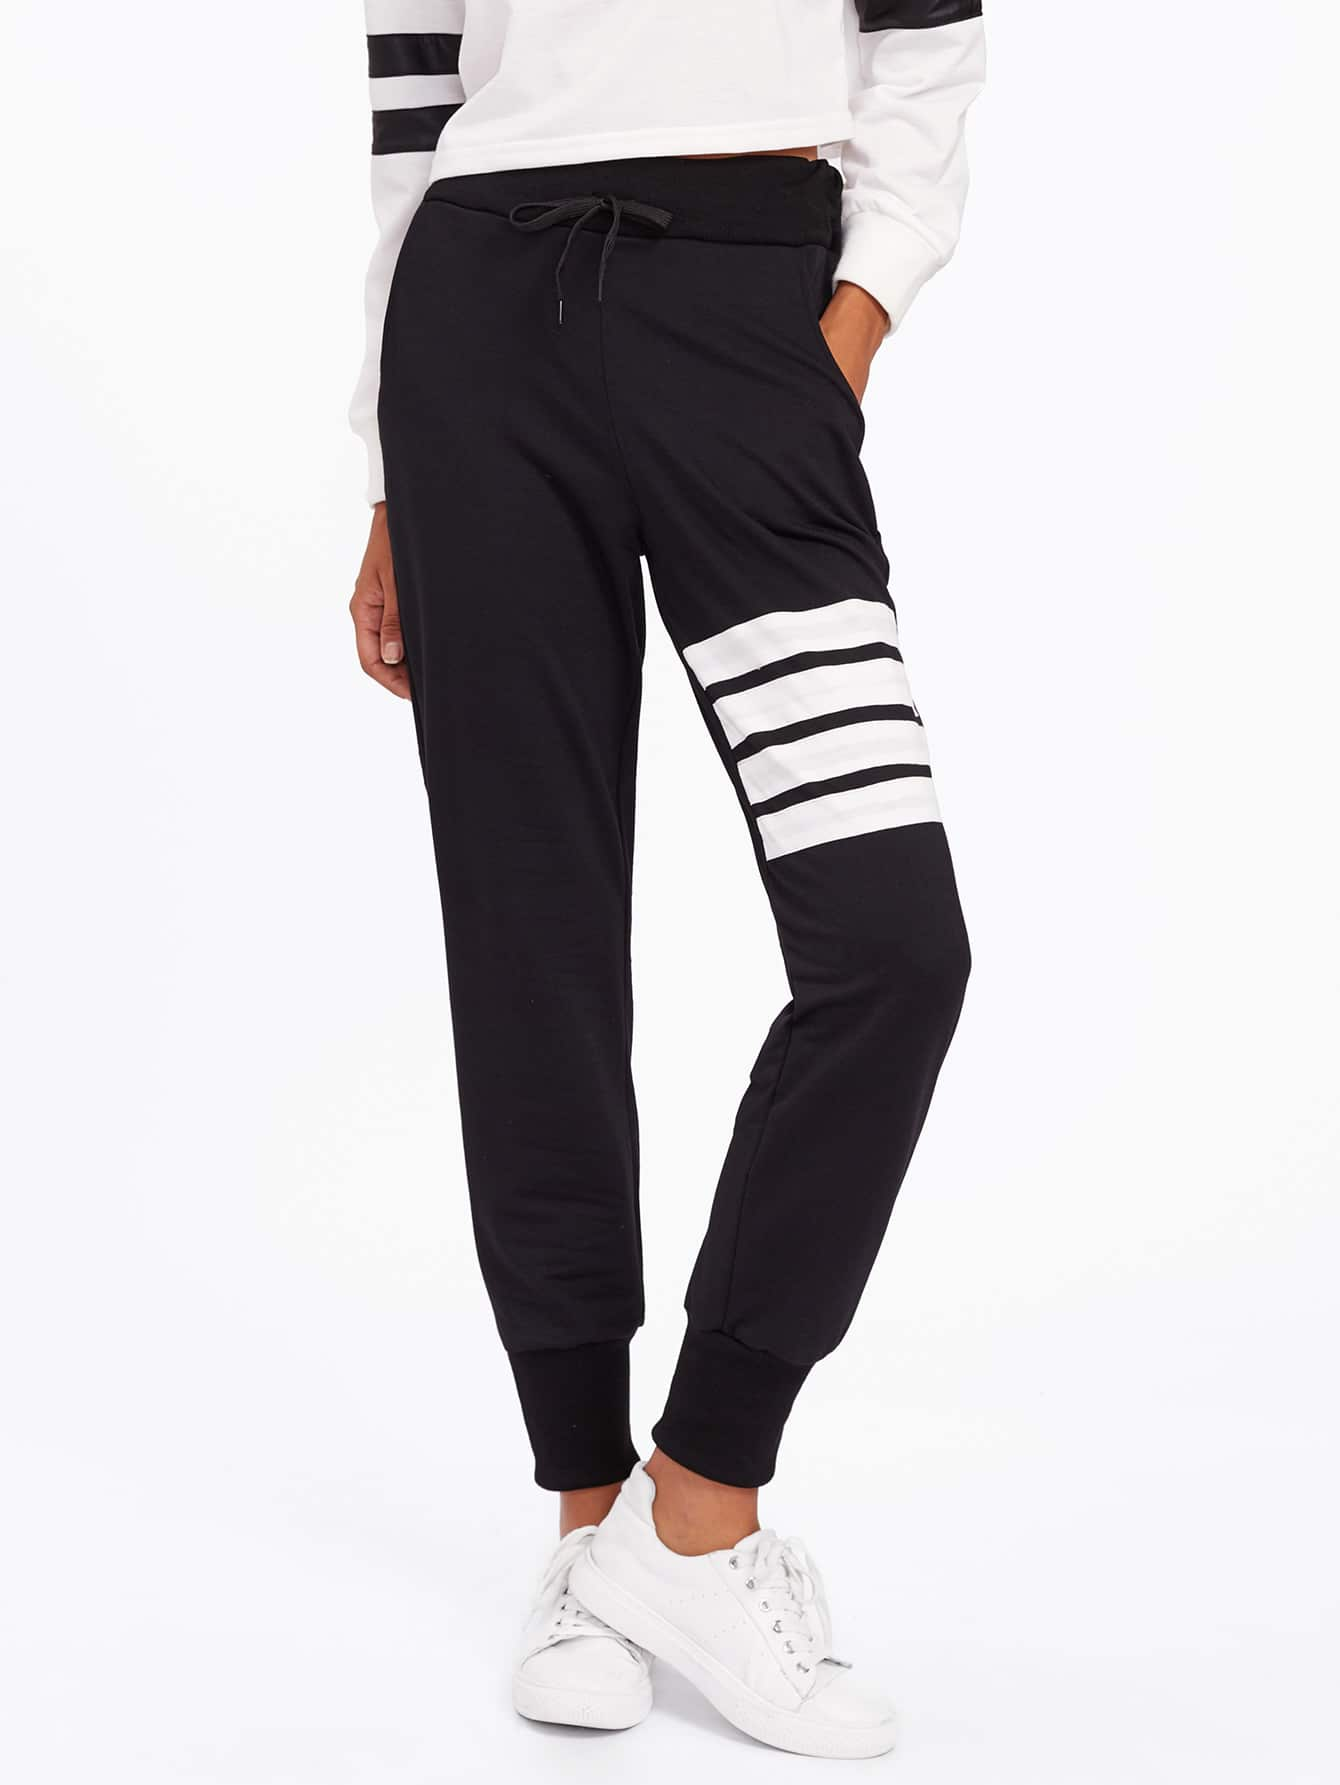 Image of Contrast Striped Drawstring Waist Pants